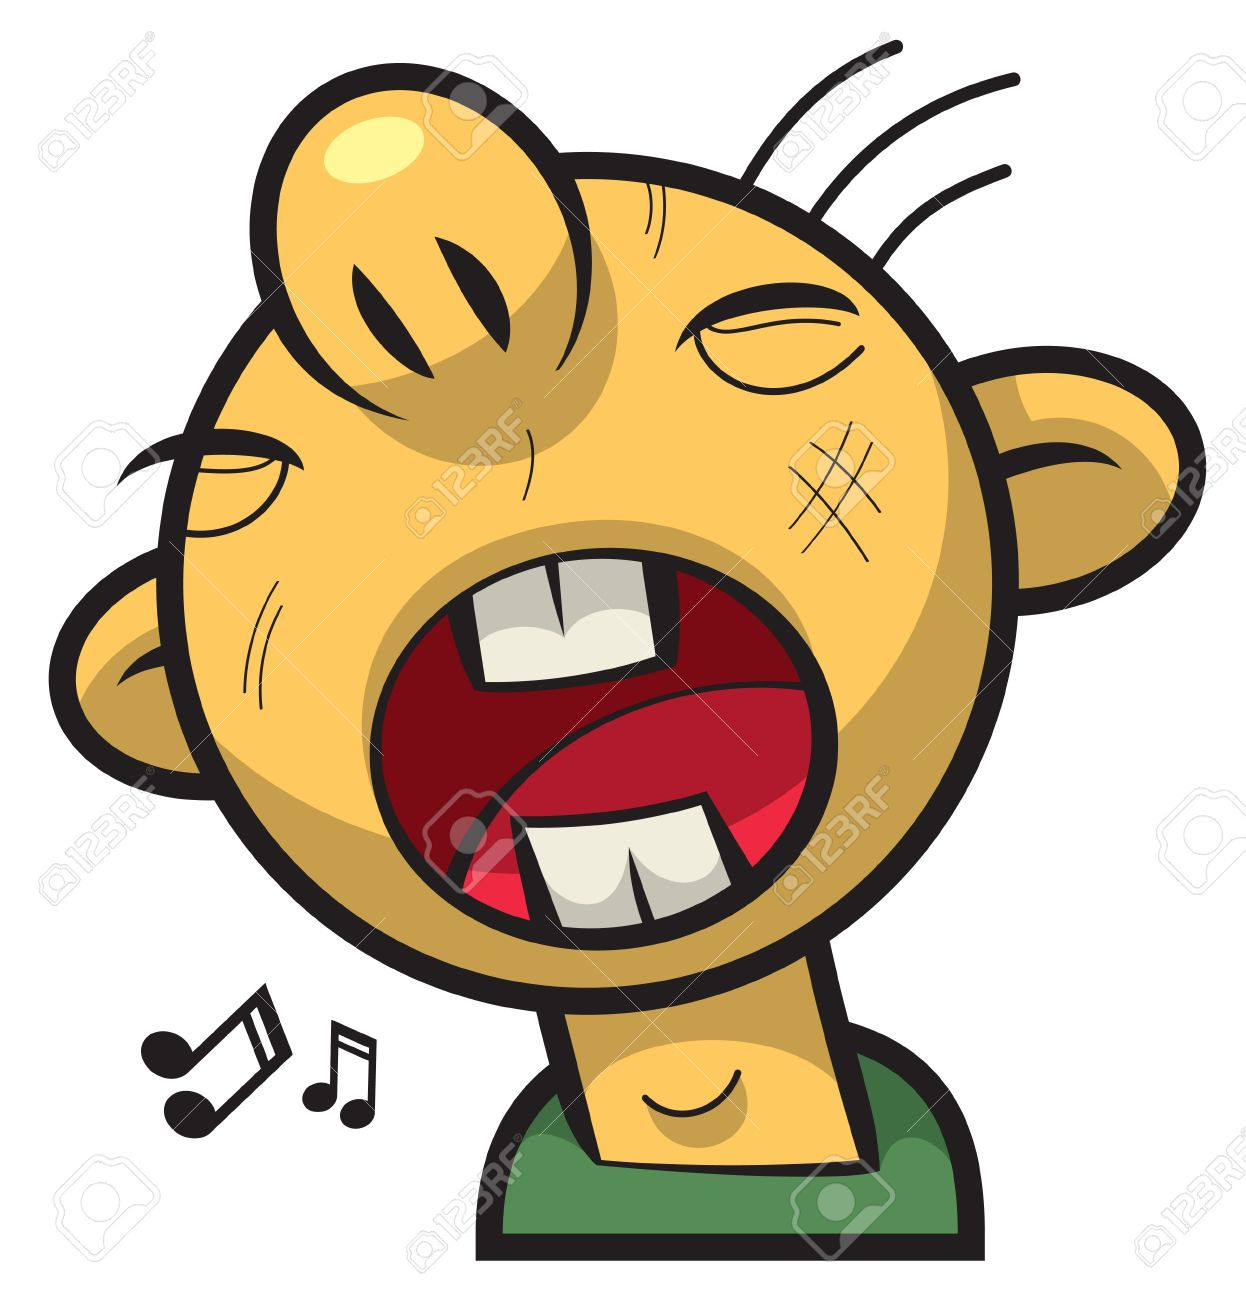 Clipart face with big mouth vector transparent stock Singing Boy With Round Face And Big Mouth Royalty Free Cliparts ... vector transparent stock